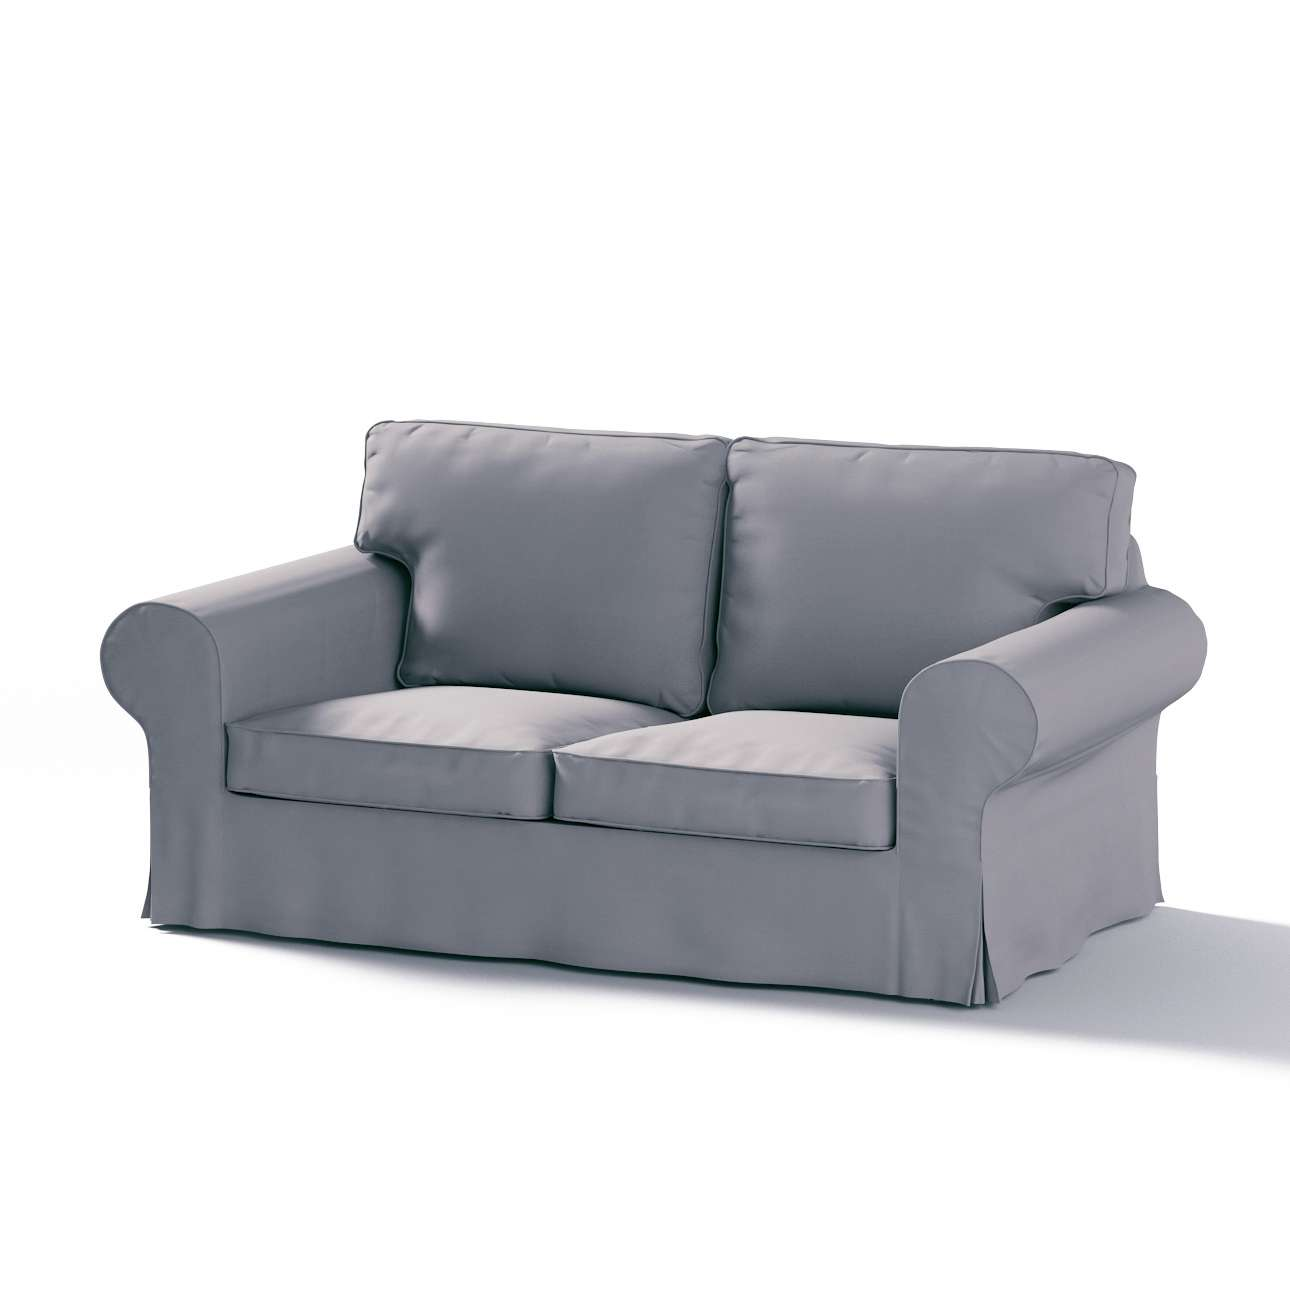 Ektorp 2-seater sofa cover in collection Panama Cotton, fabric: 702-07